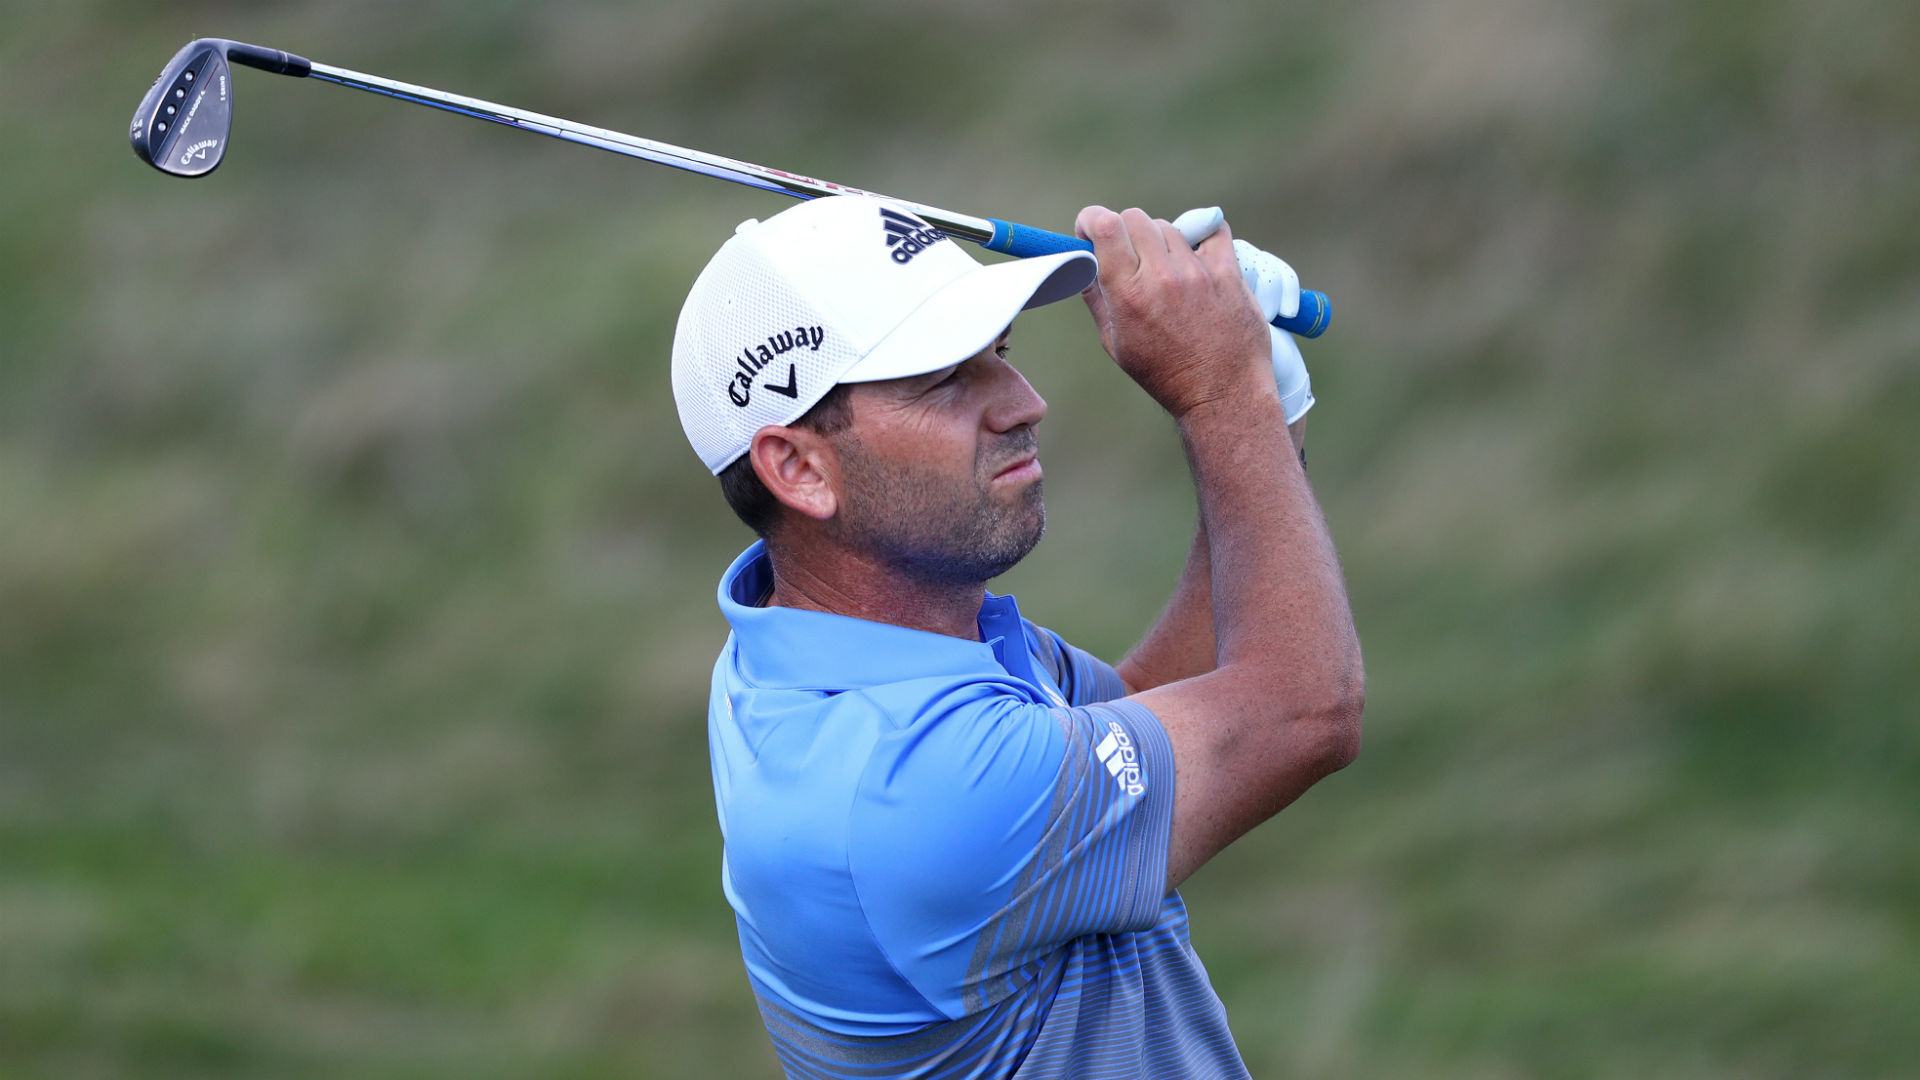 Sweet 16 for Garcia at KLM Open after Shinkwin's back-nine woes